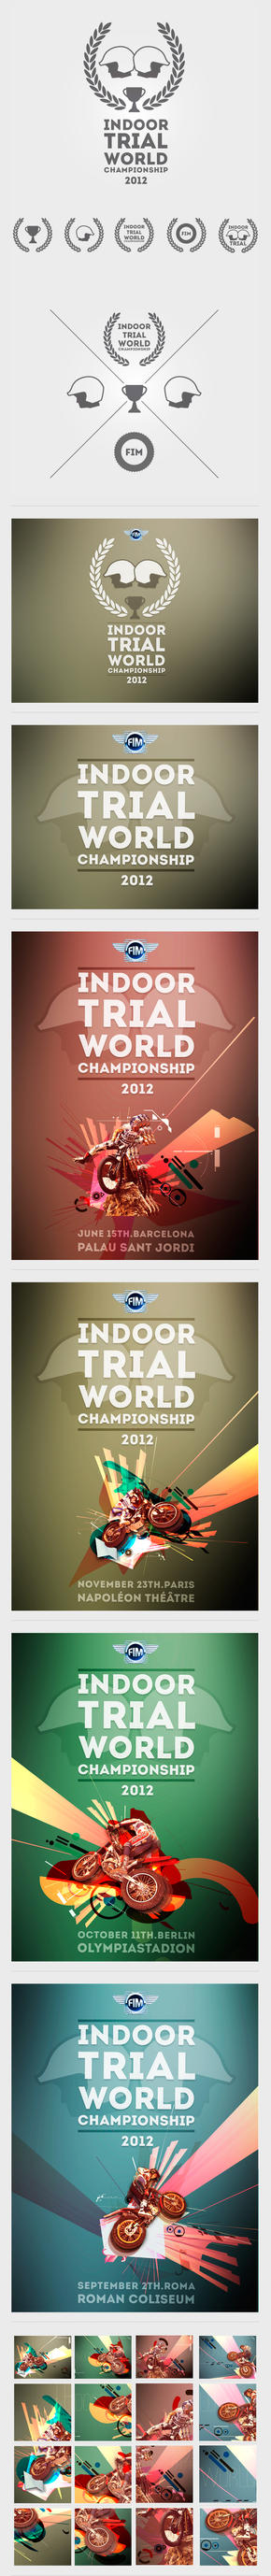 FIM Indoor Trial World Championship by badendesing